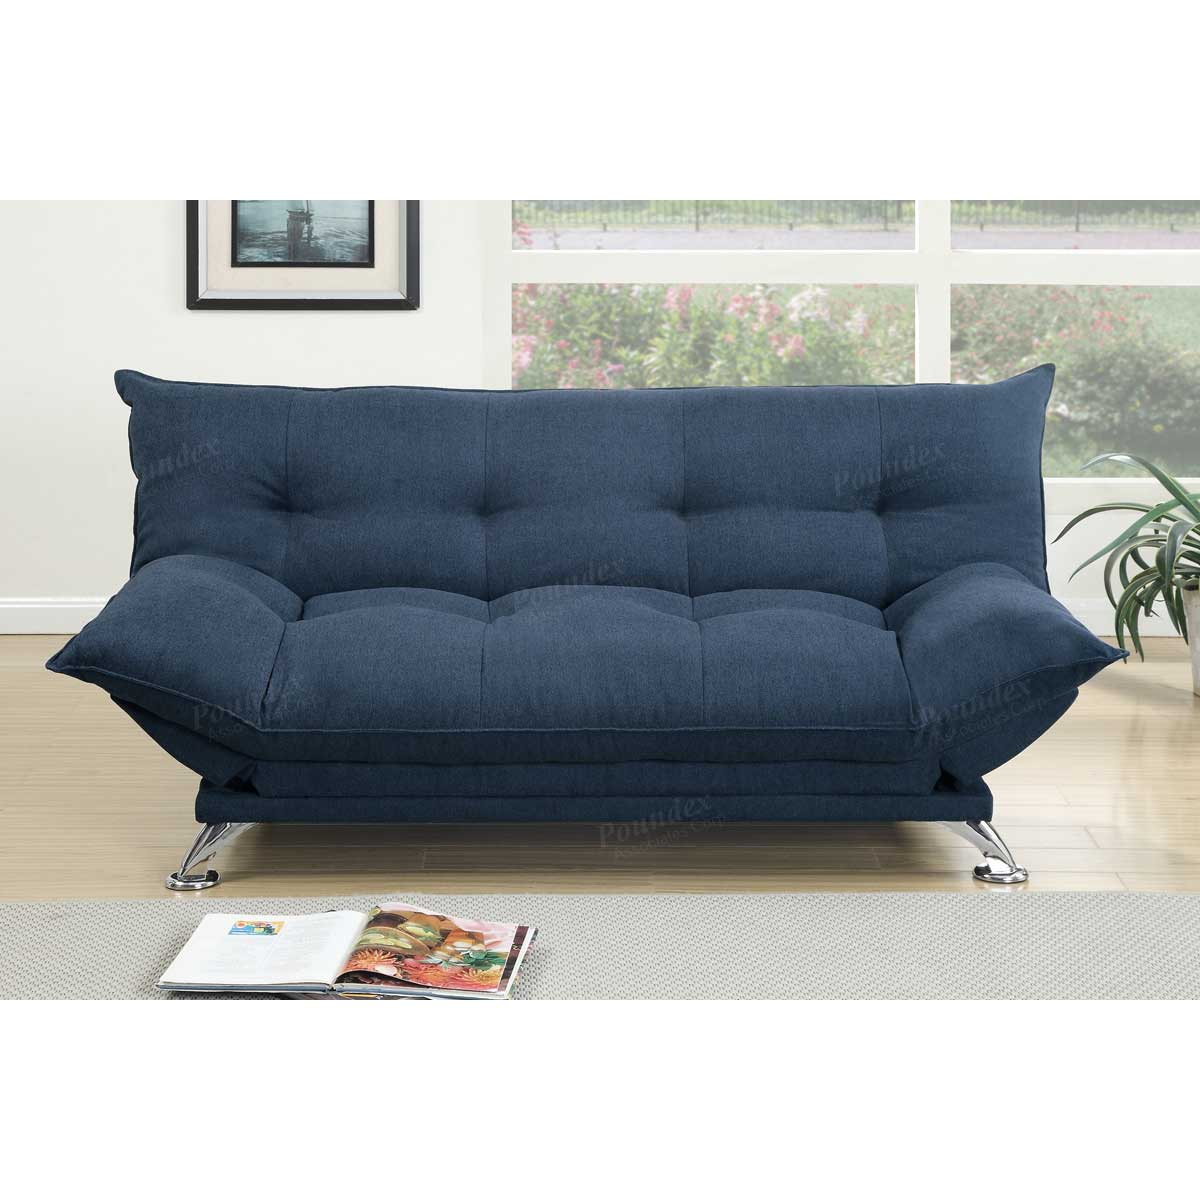 Navy Velvet Fabric Futon Sofa Bed